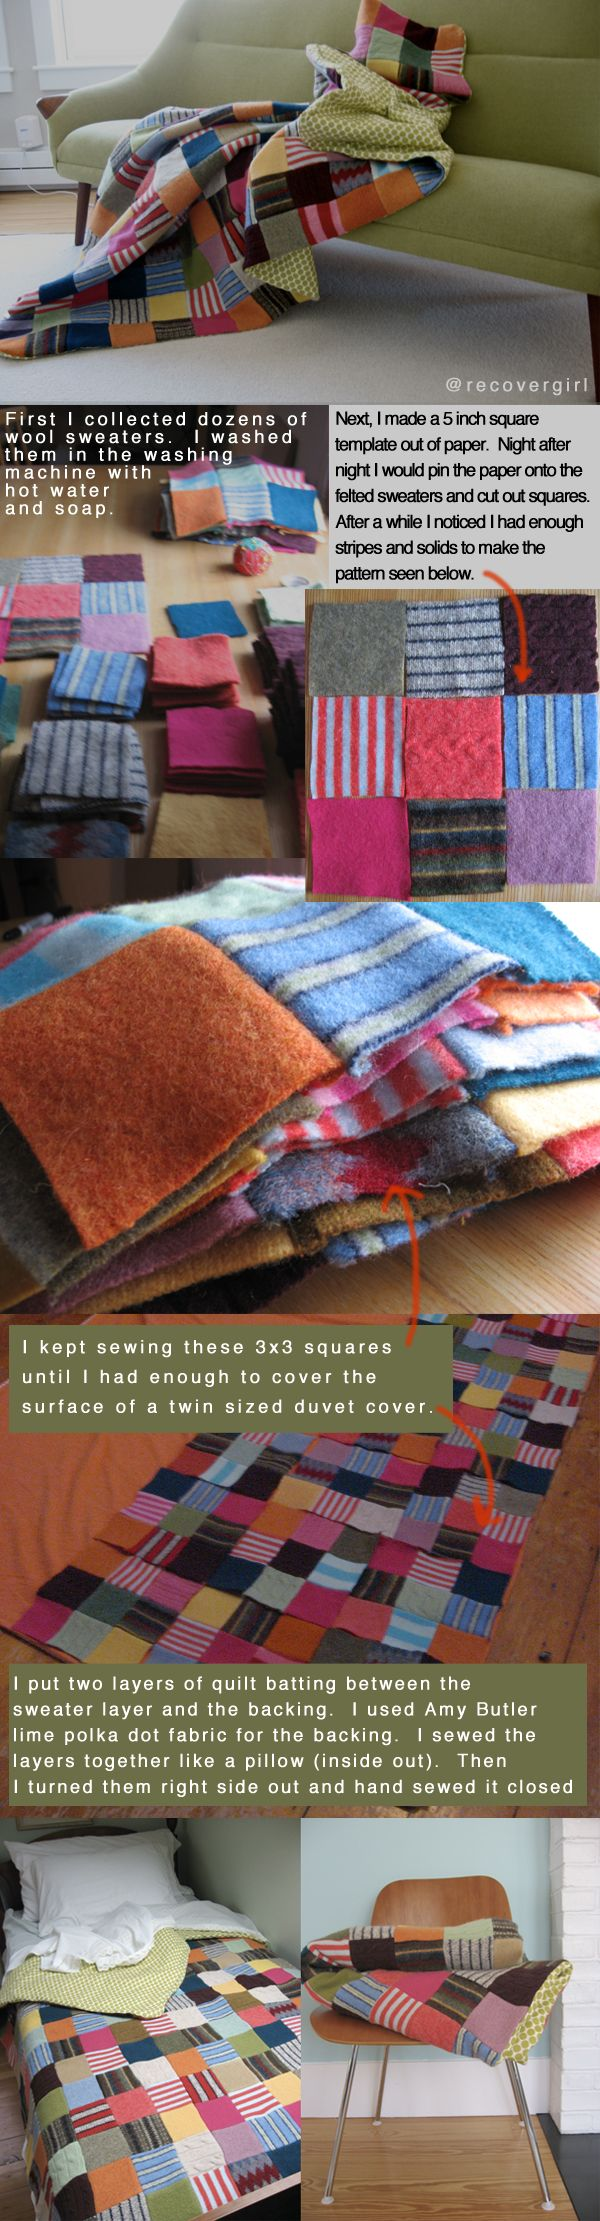 Flannel shirts would be nice too!! Or felted sweater blanket.